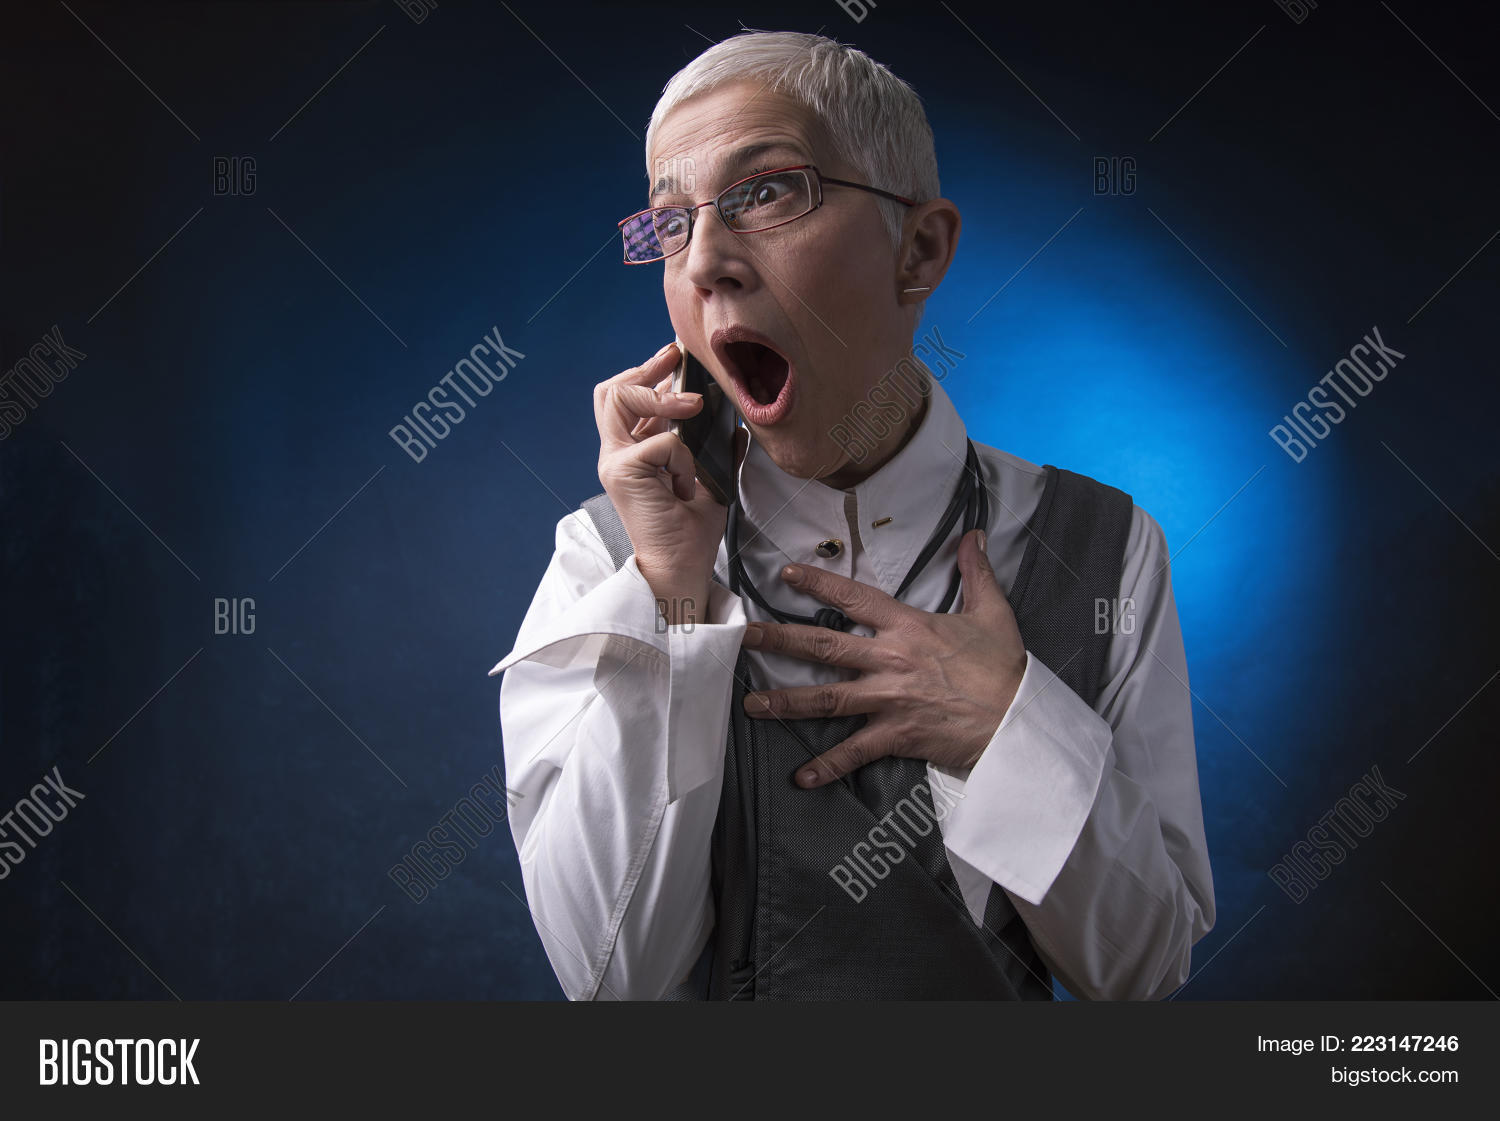 Shocked Appalled Image & Photo (Free Trial)   Bigstock